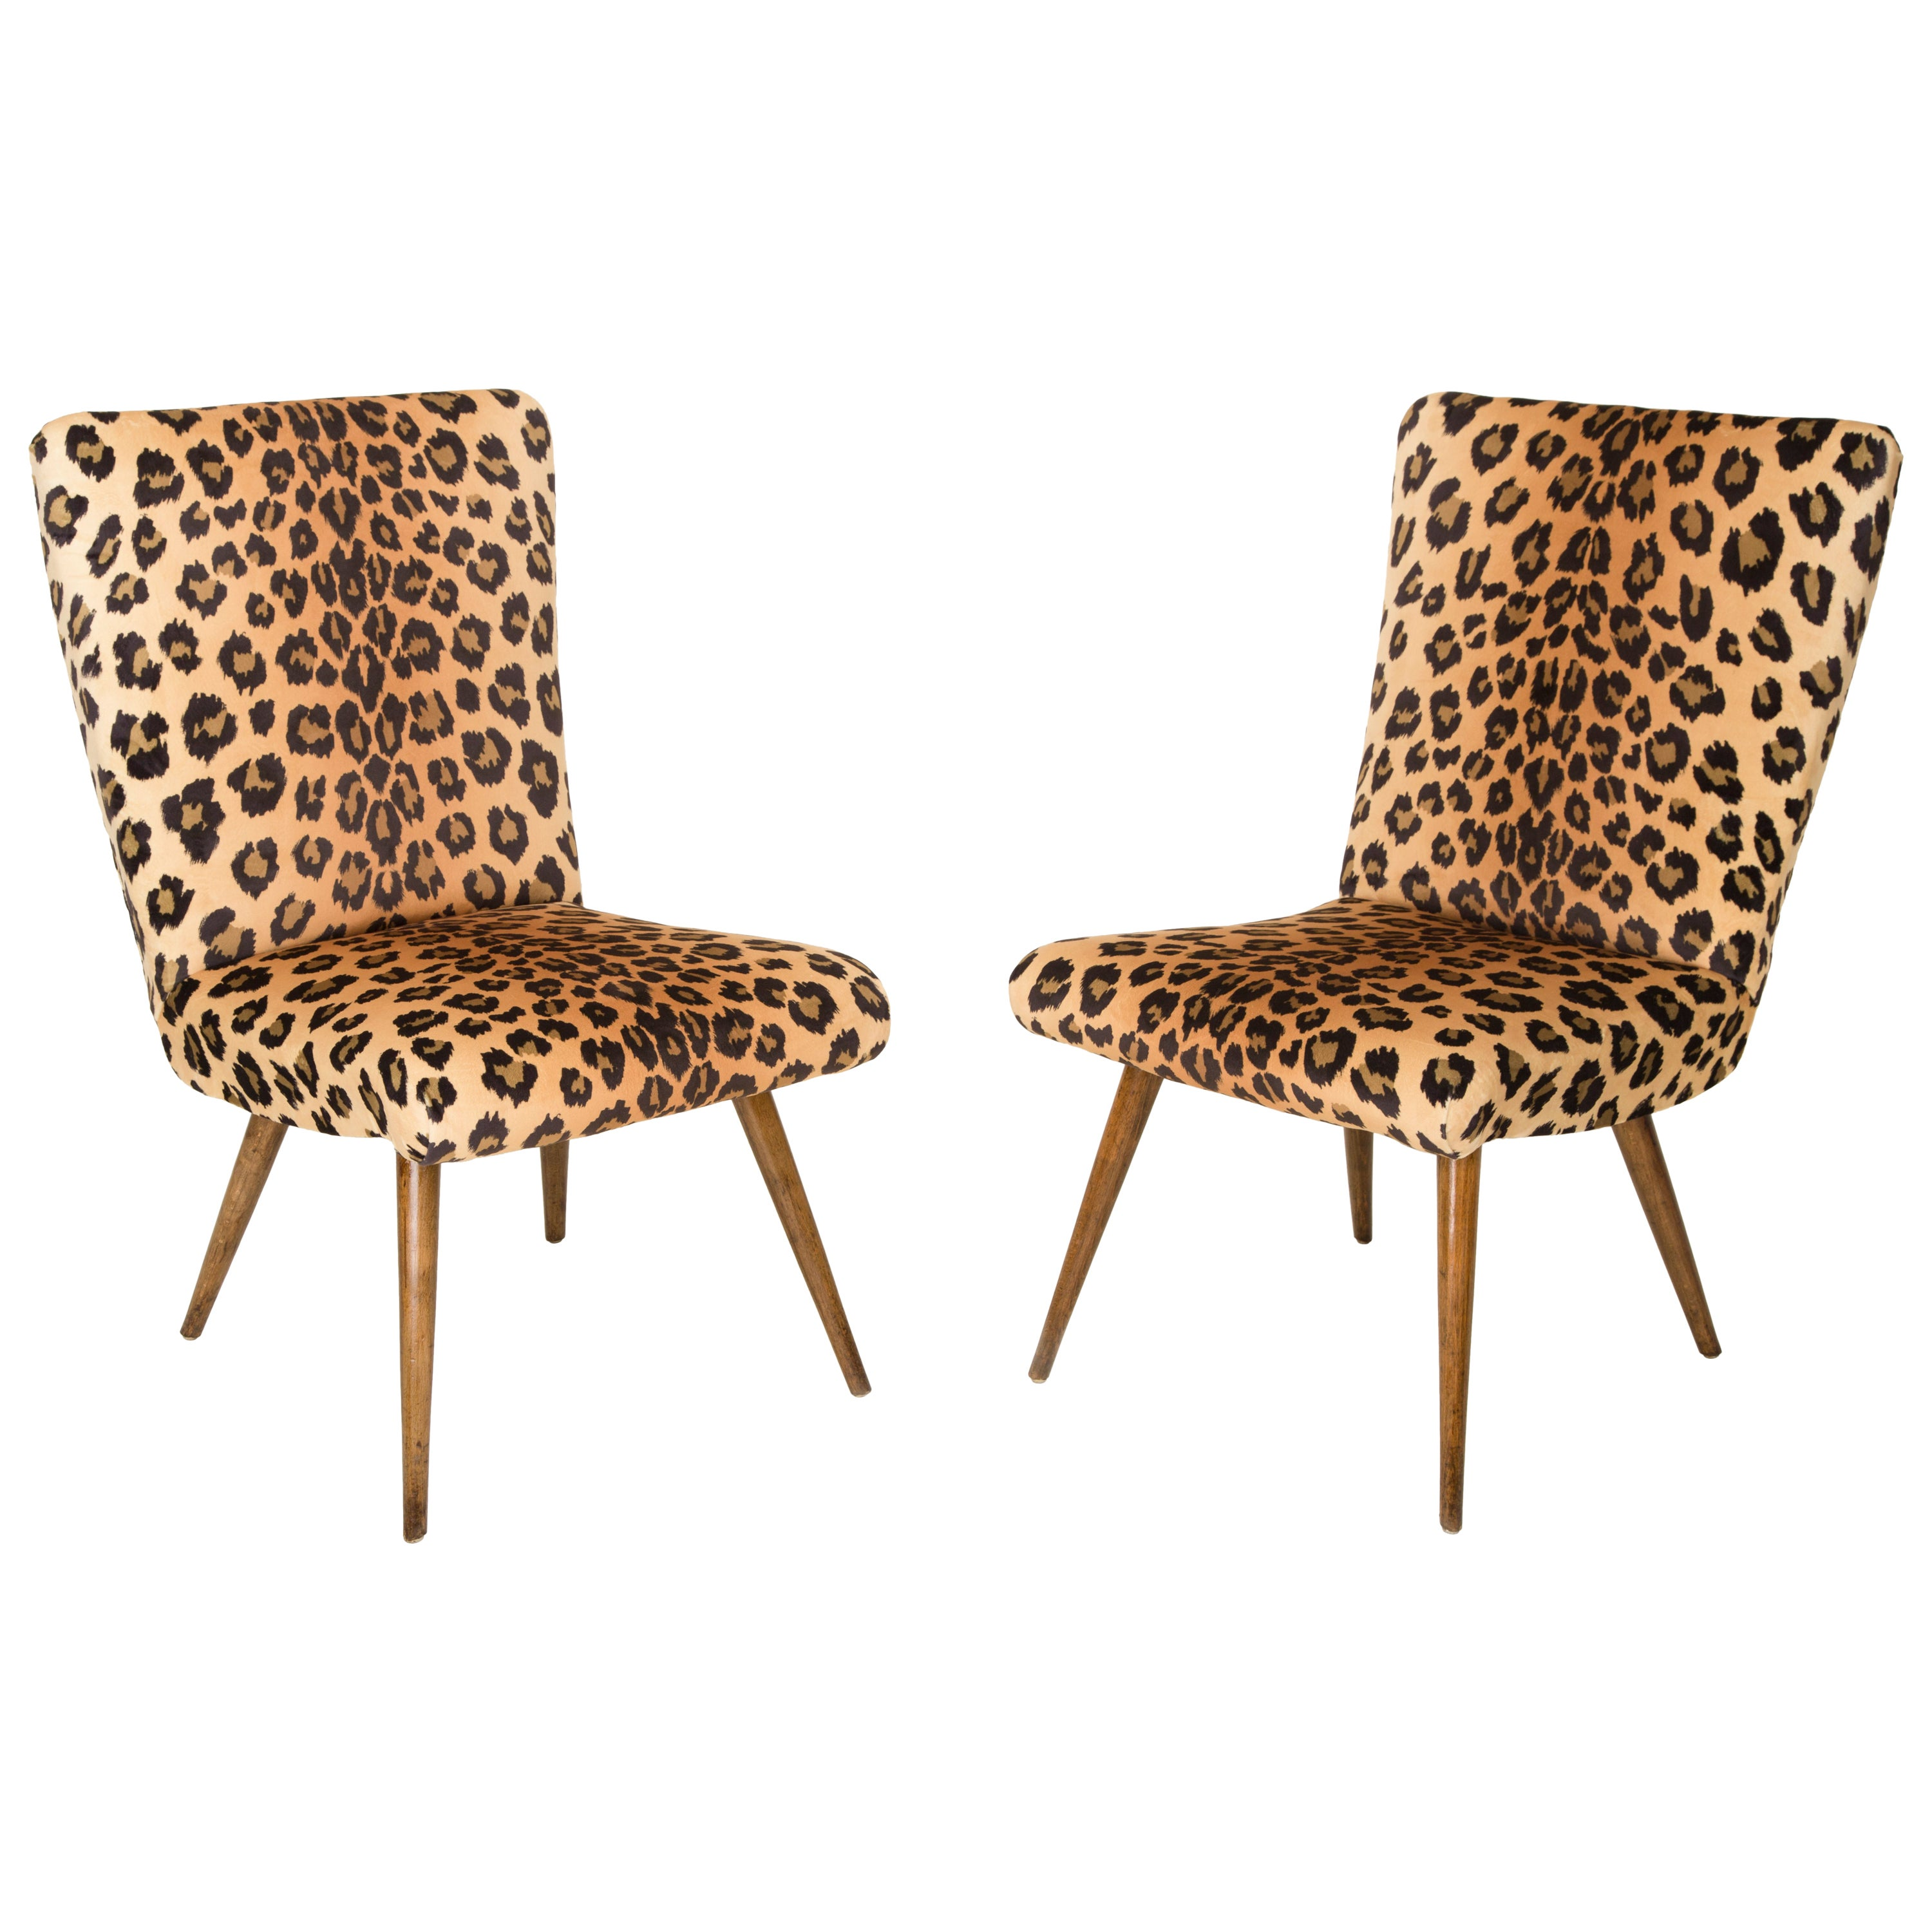 Set of two mid century modern leopard print chairs 1960s germany for sale at 1stdibs